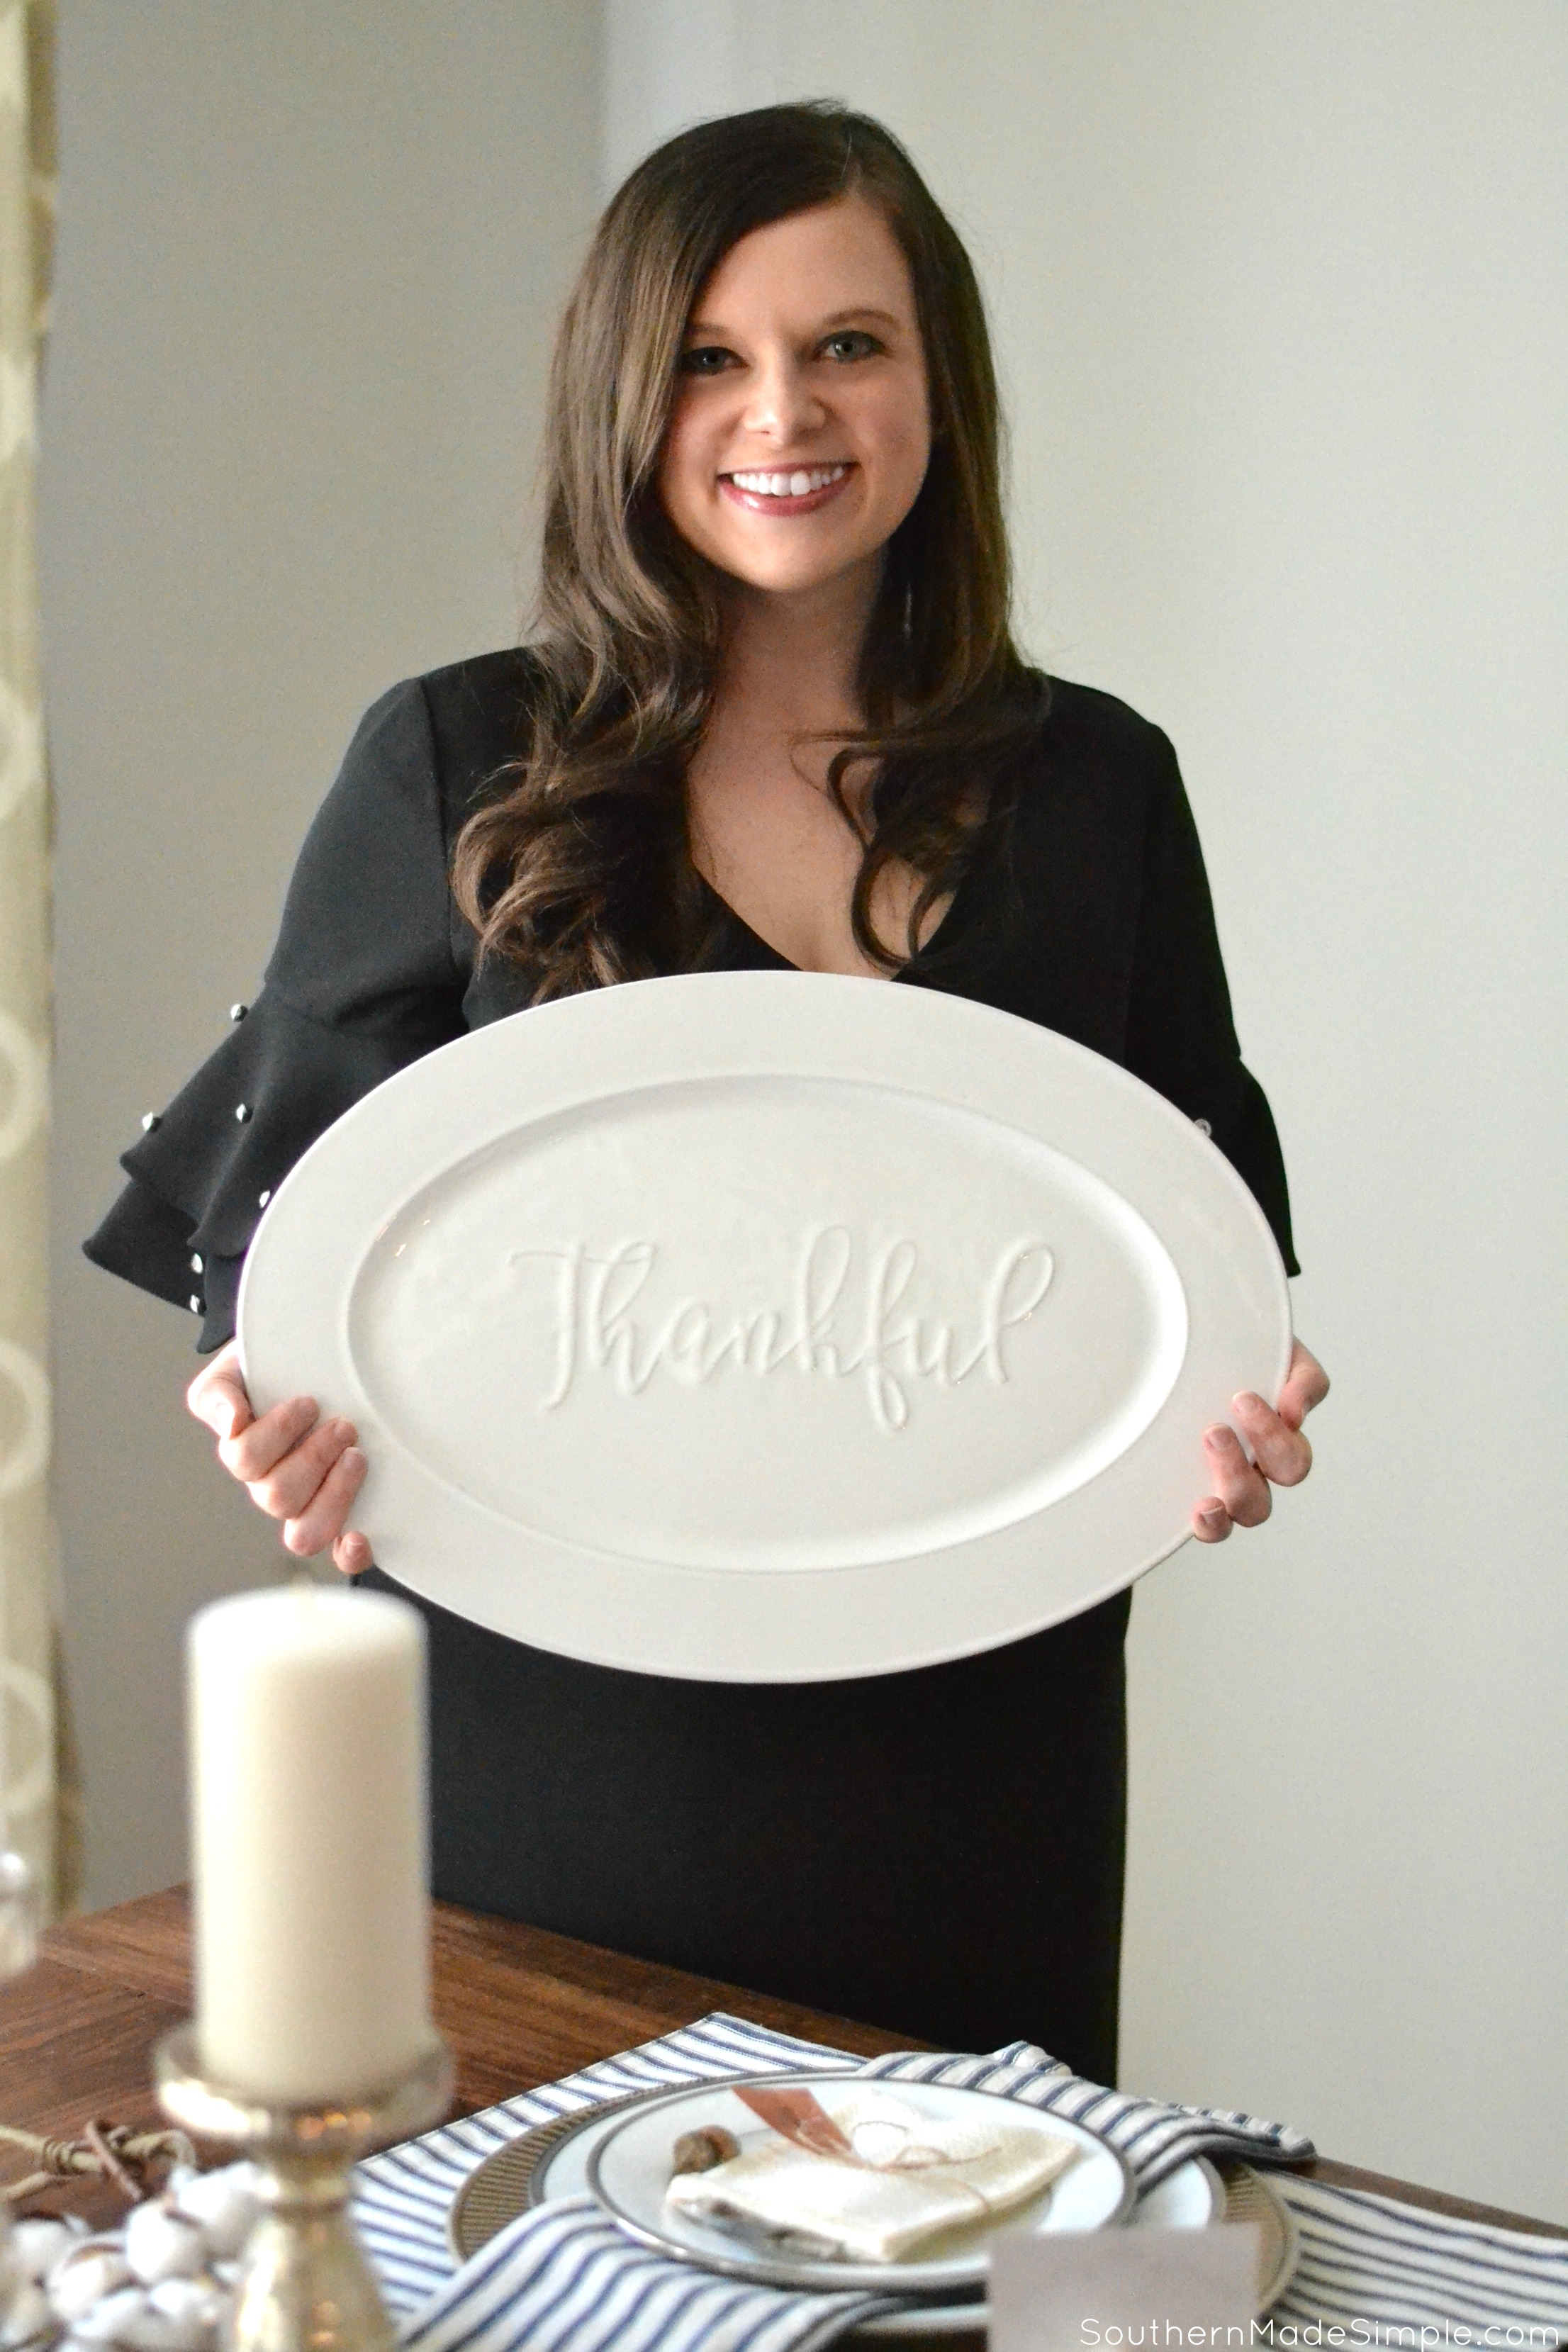 My Top Thanksgiving Hostess Gift Pick: Precious Moments Bountiful Blessings Collection